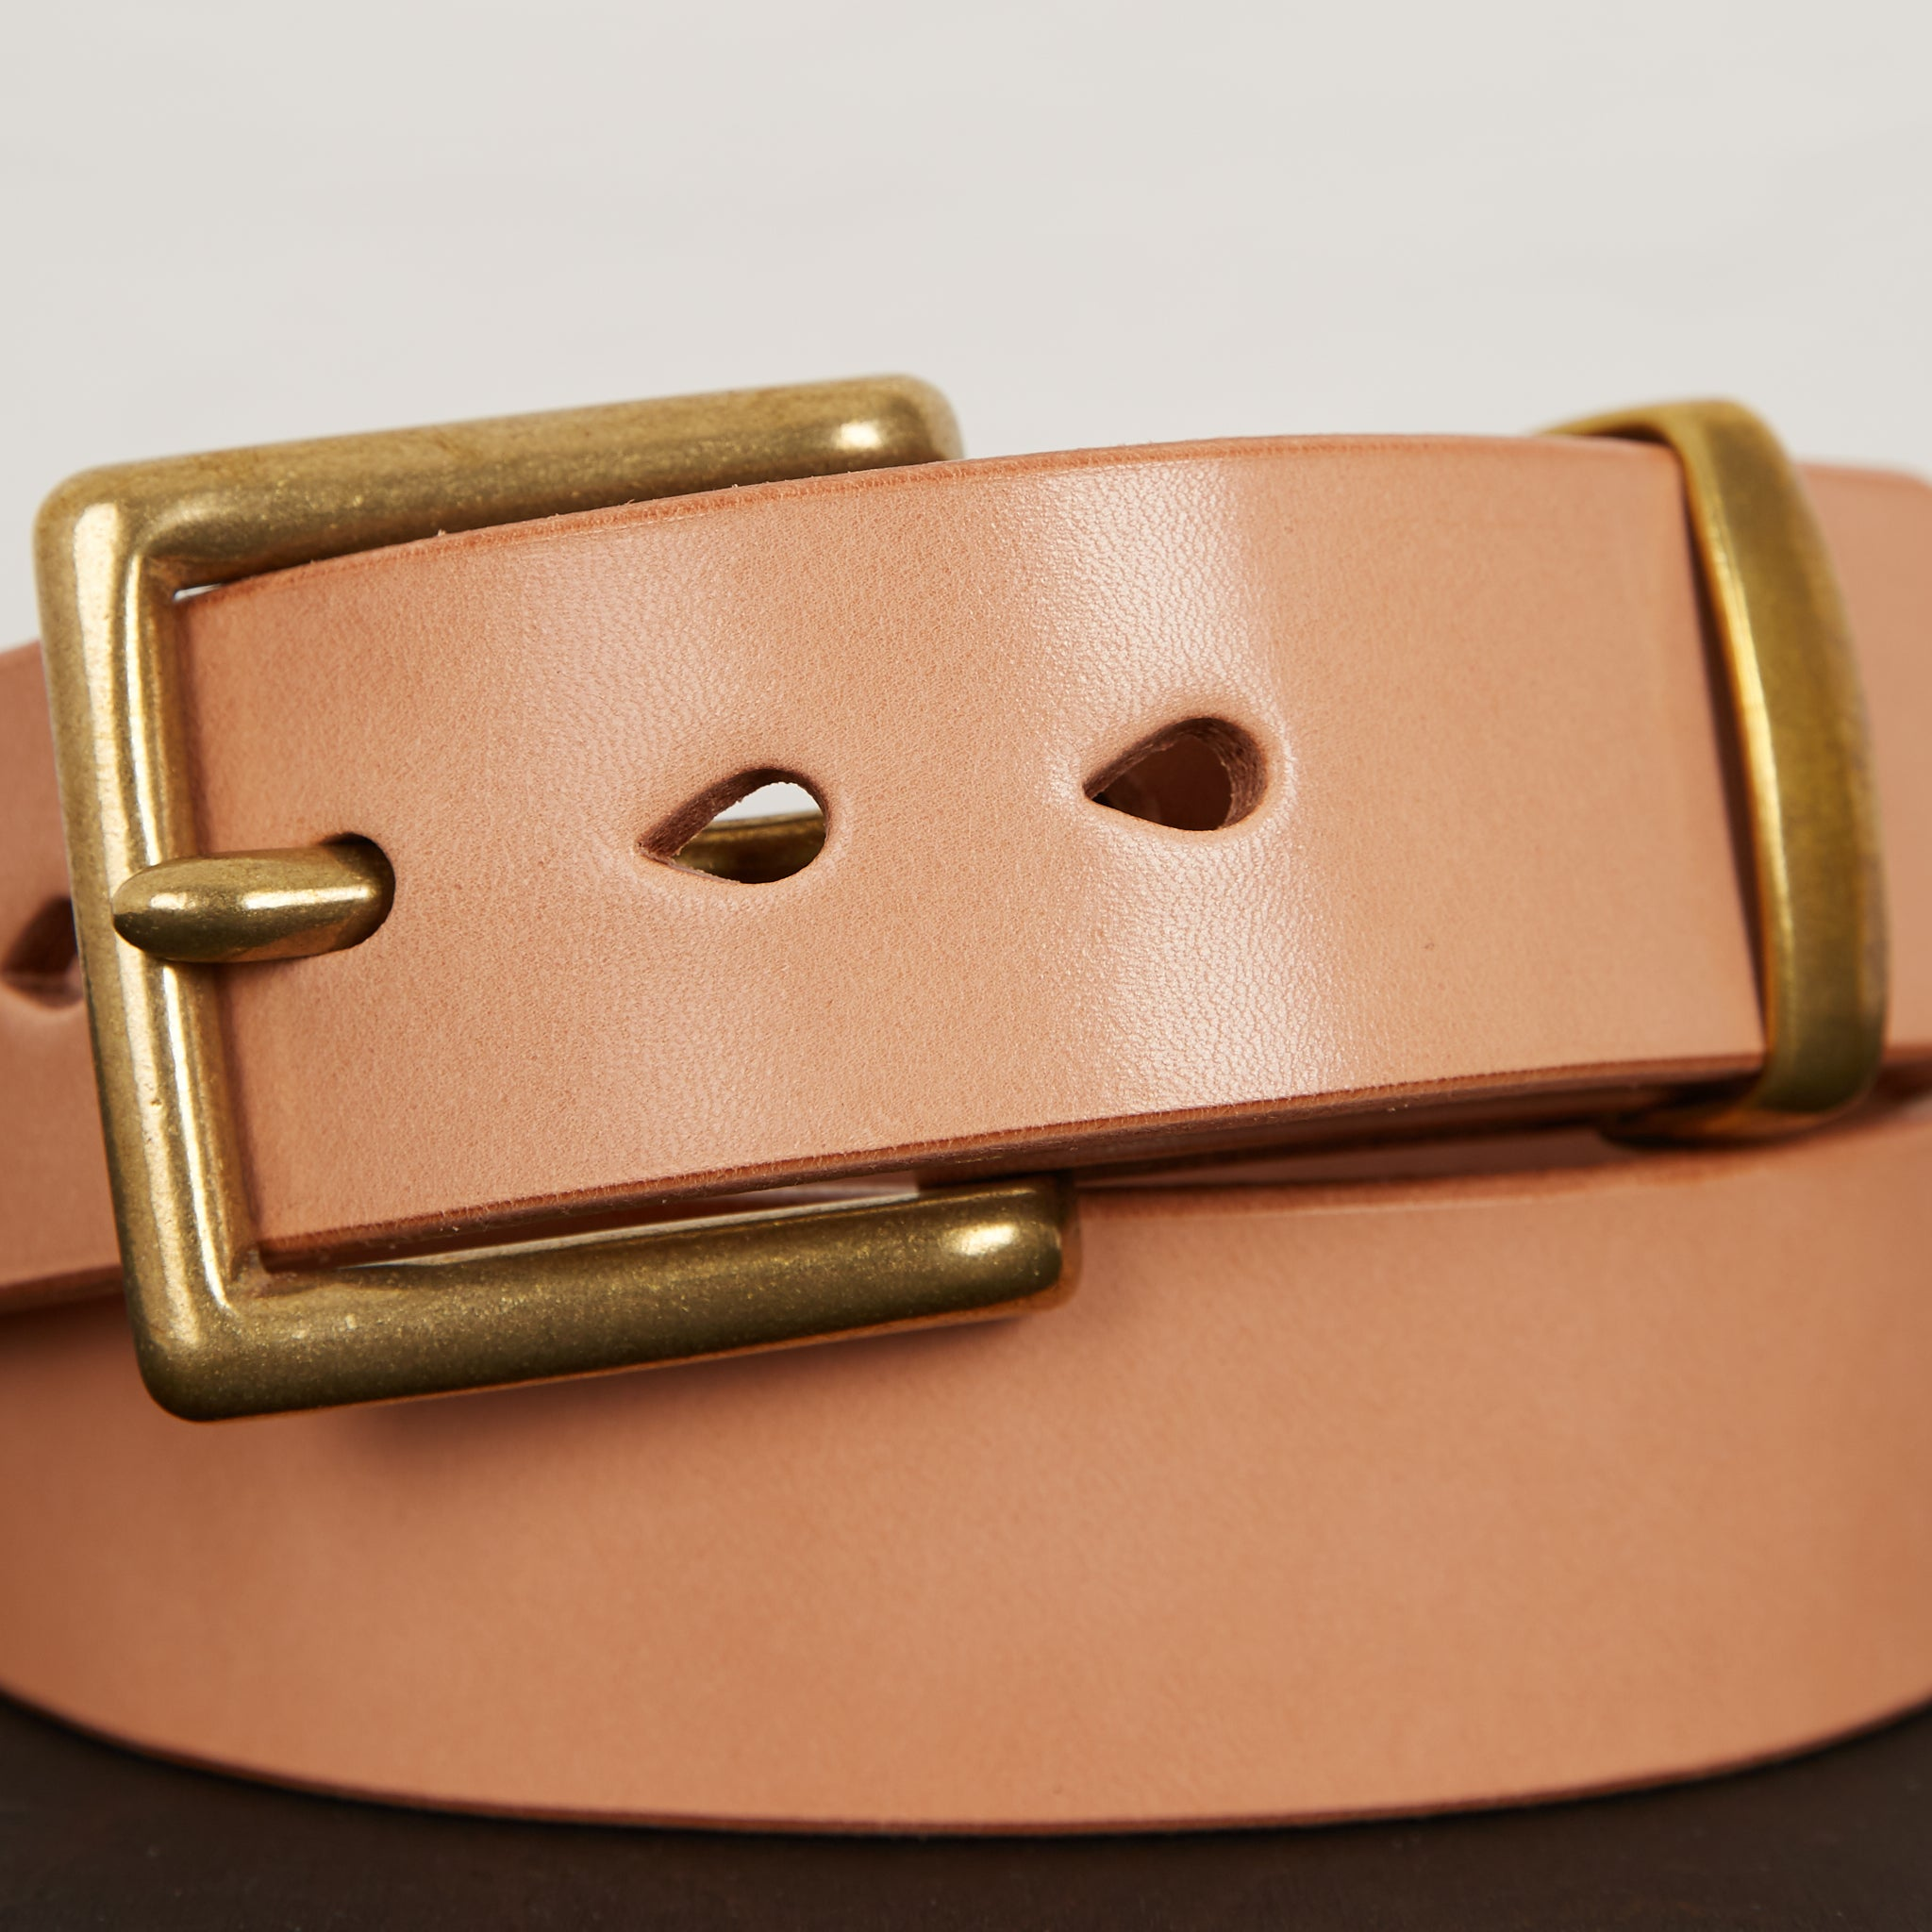 IHB-06 Heavy Duty Leather Belt Natural